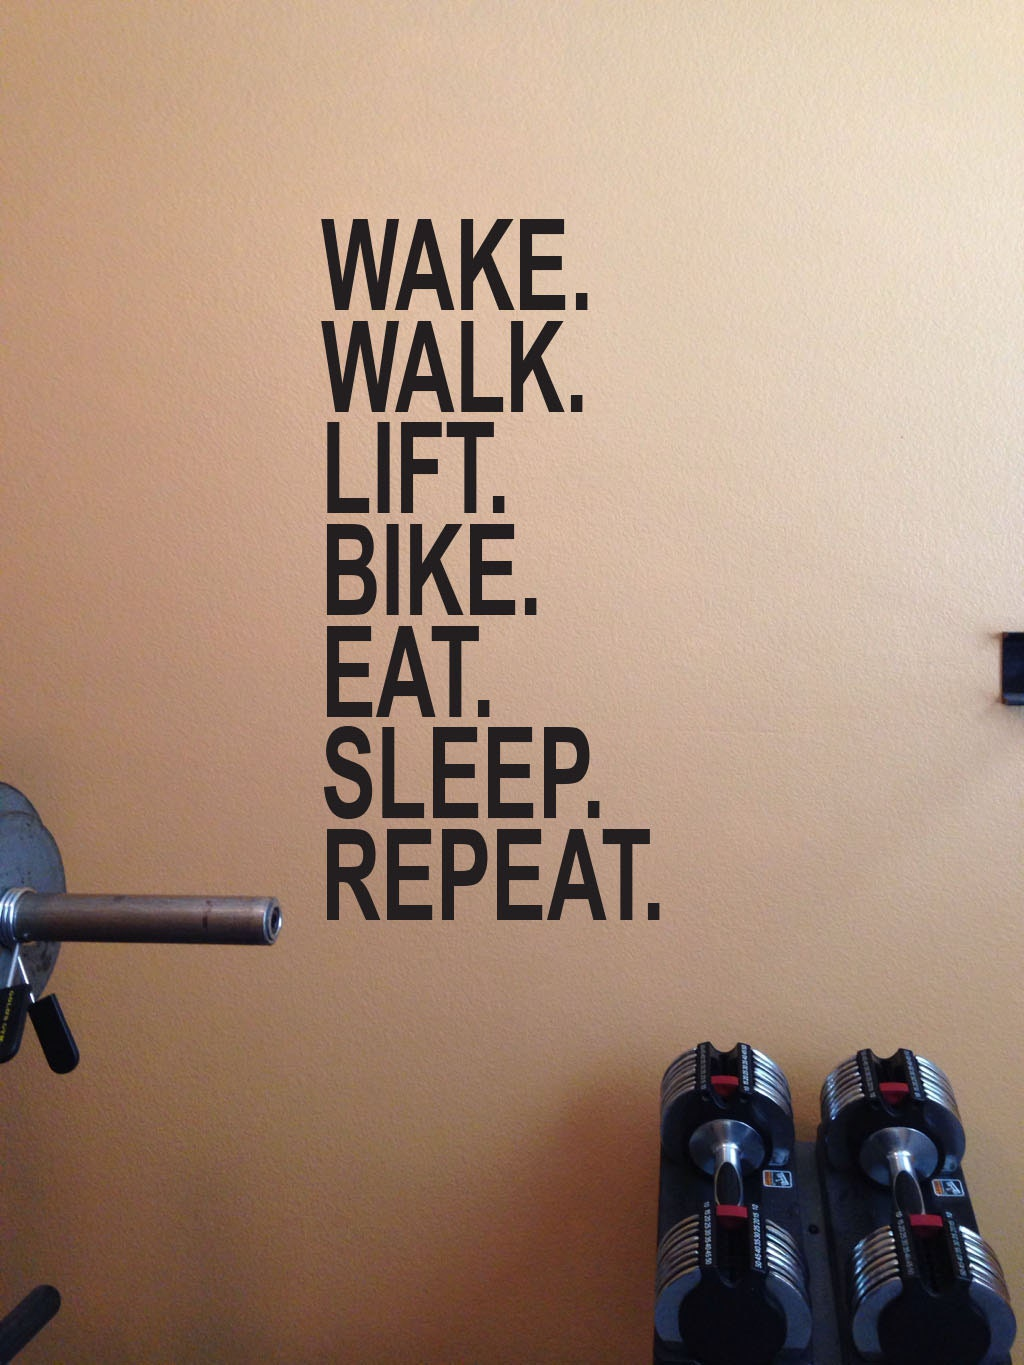 Garage gym ideas wake walk lift bike eat sleep repeat